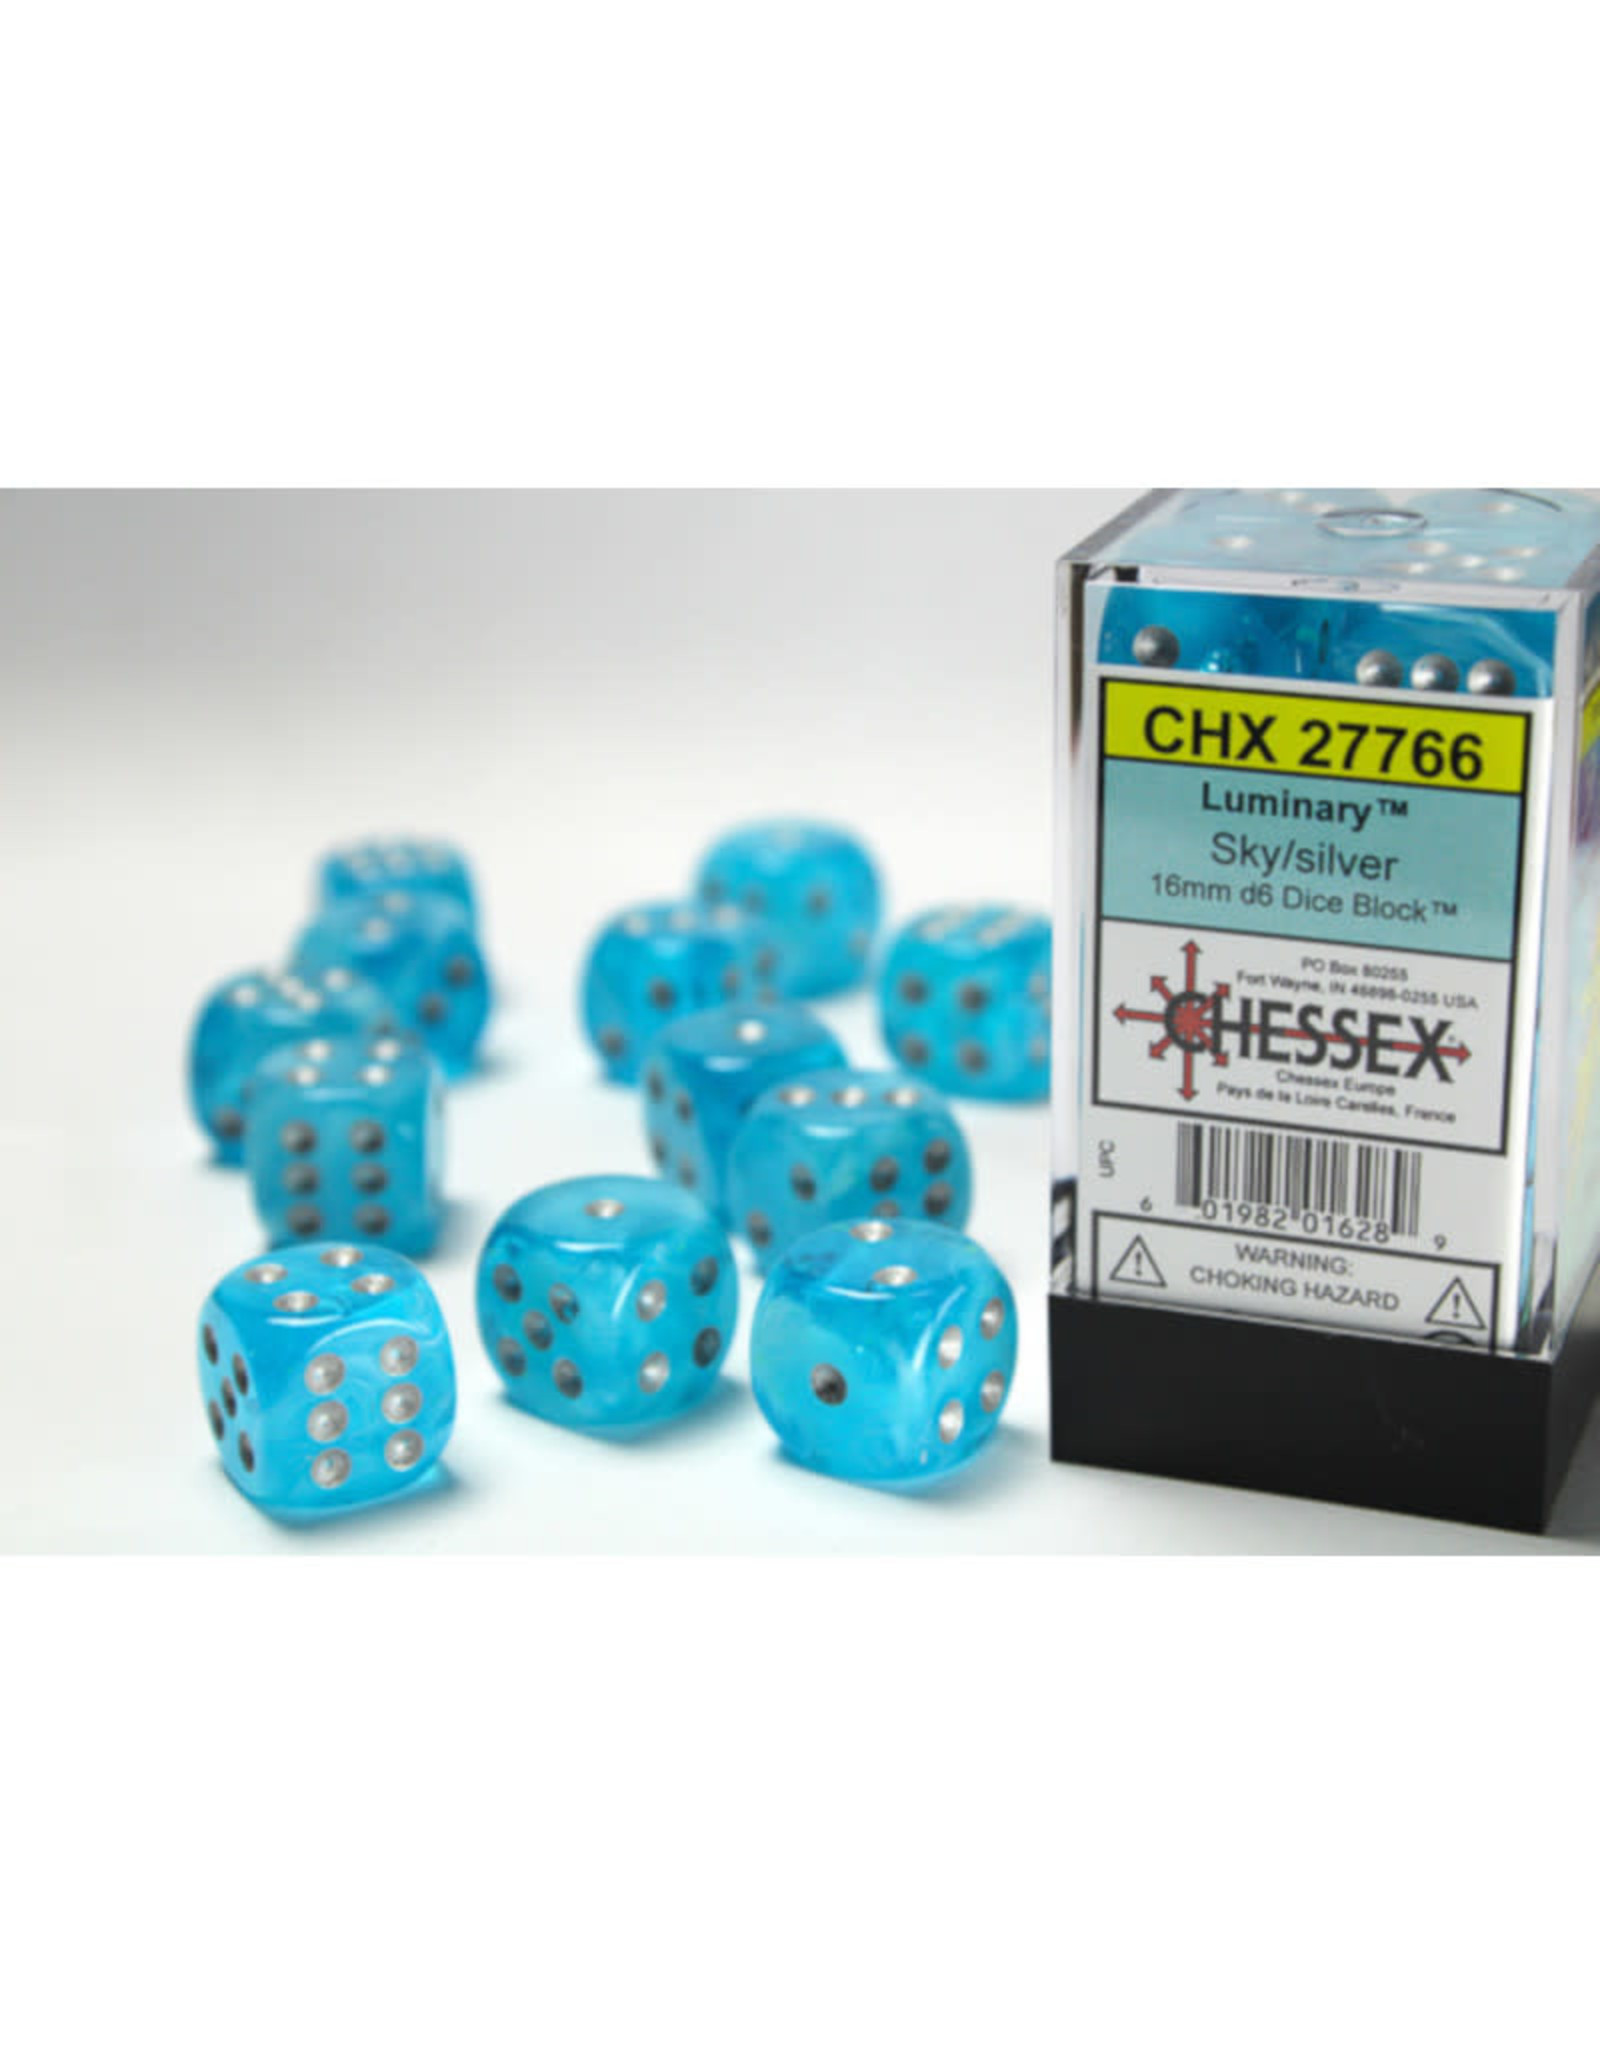 Chessex D6 Dice: 16mm Menagerie Luminary Sky/Silver (12)